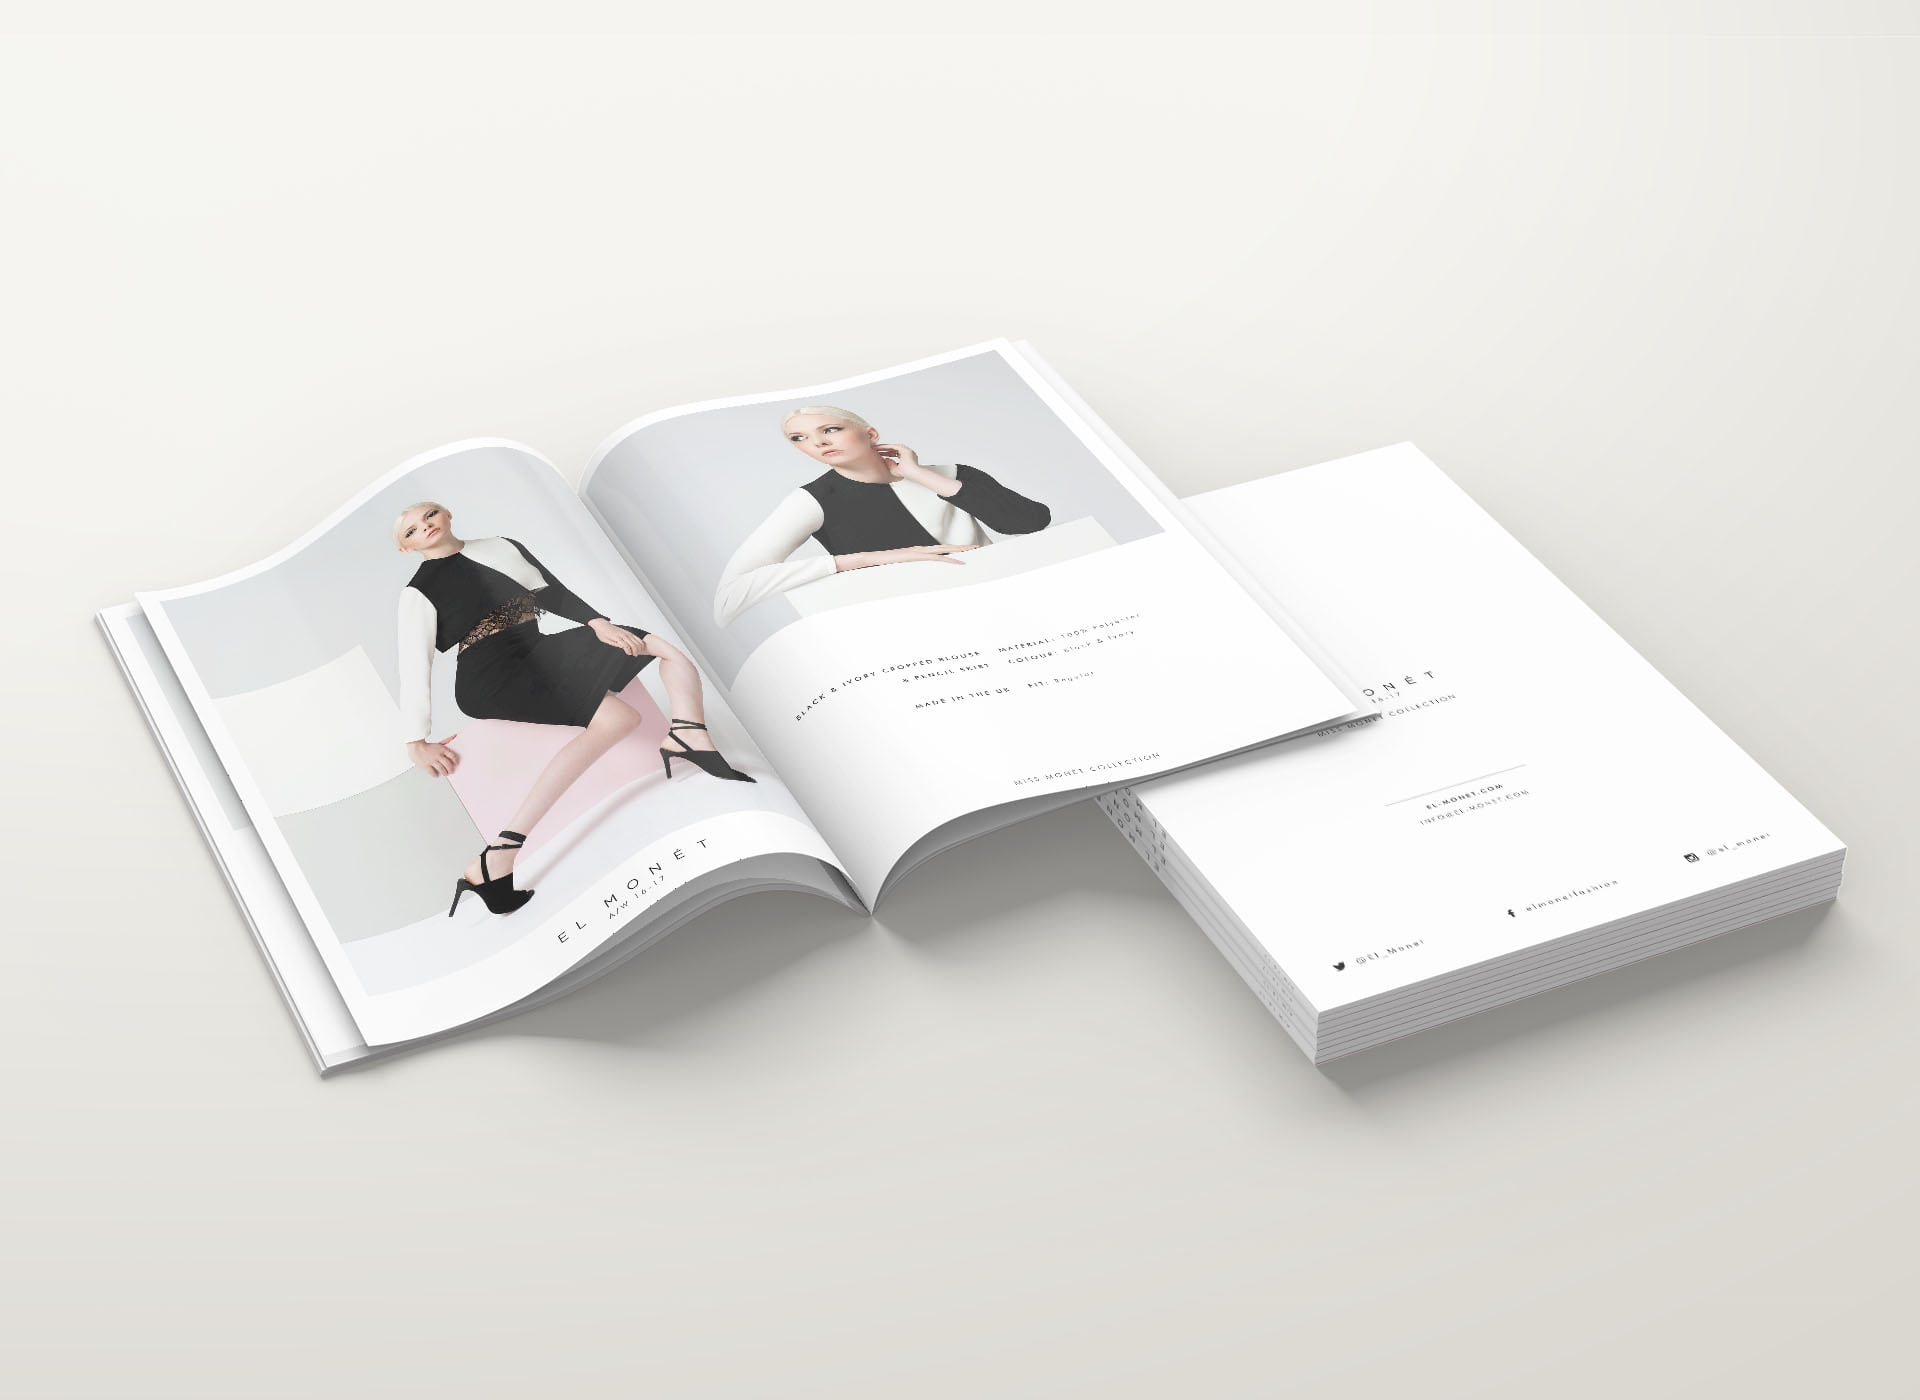 saint loupe, digital agency birmingham, creative studio uk, content production, web agency, marketing agency birmingham, brochure design and printing, marketing print, print services birmingham